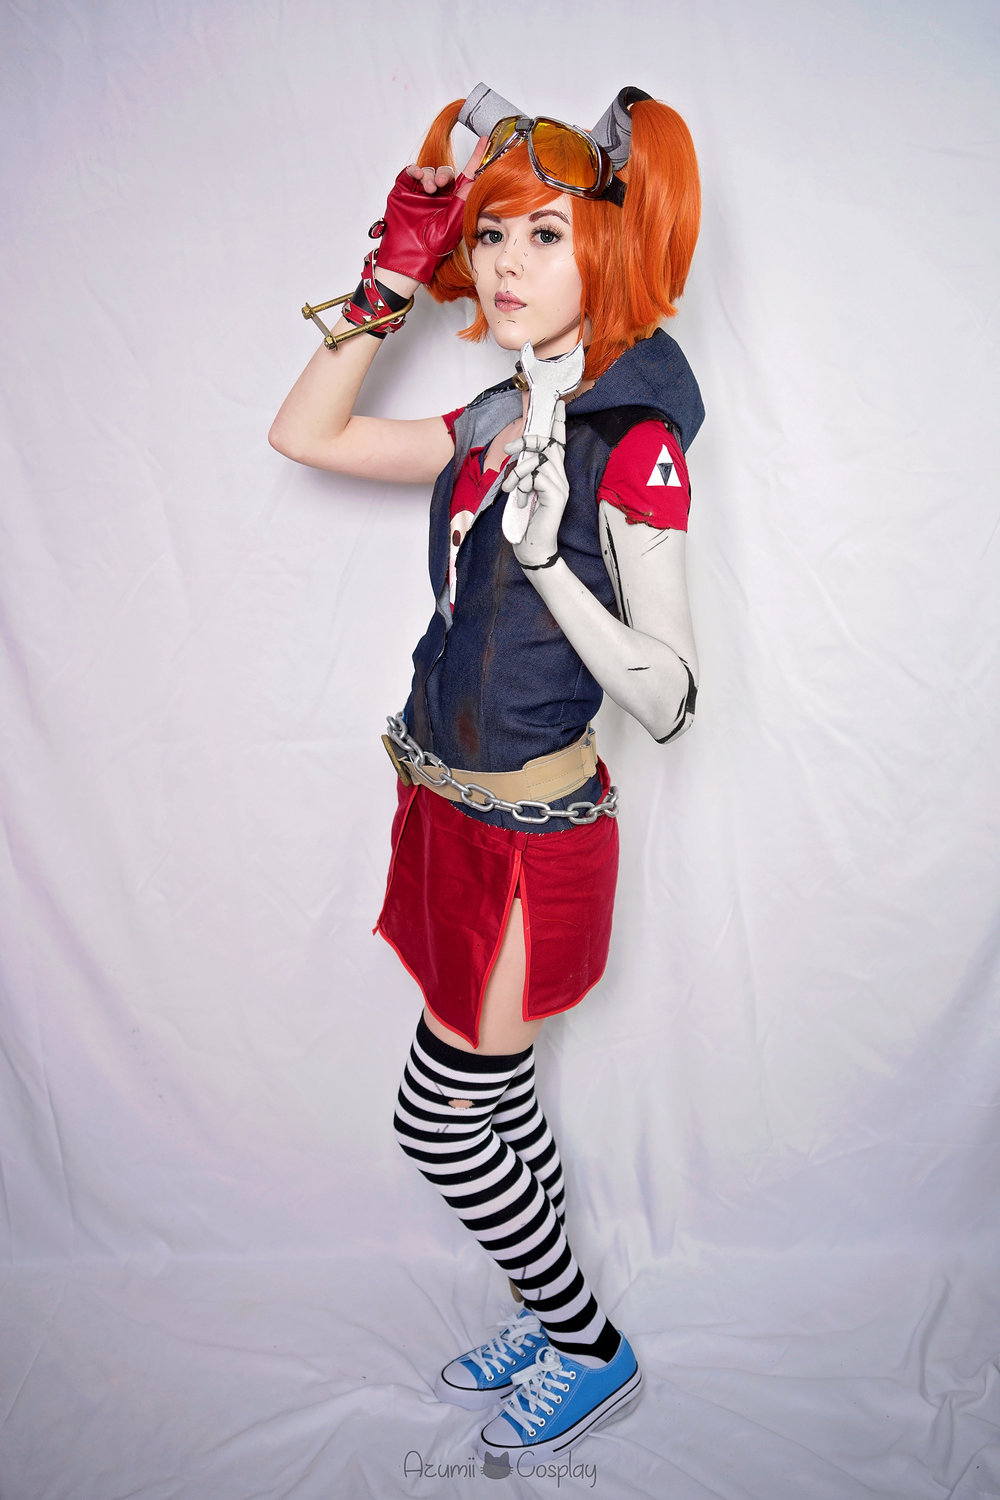 Gaige,  from Borderlands 2. Photo by   Boyfriend Cosplay  & Photography